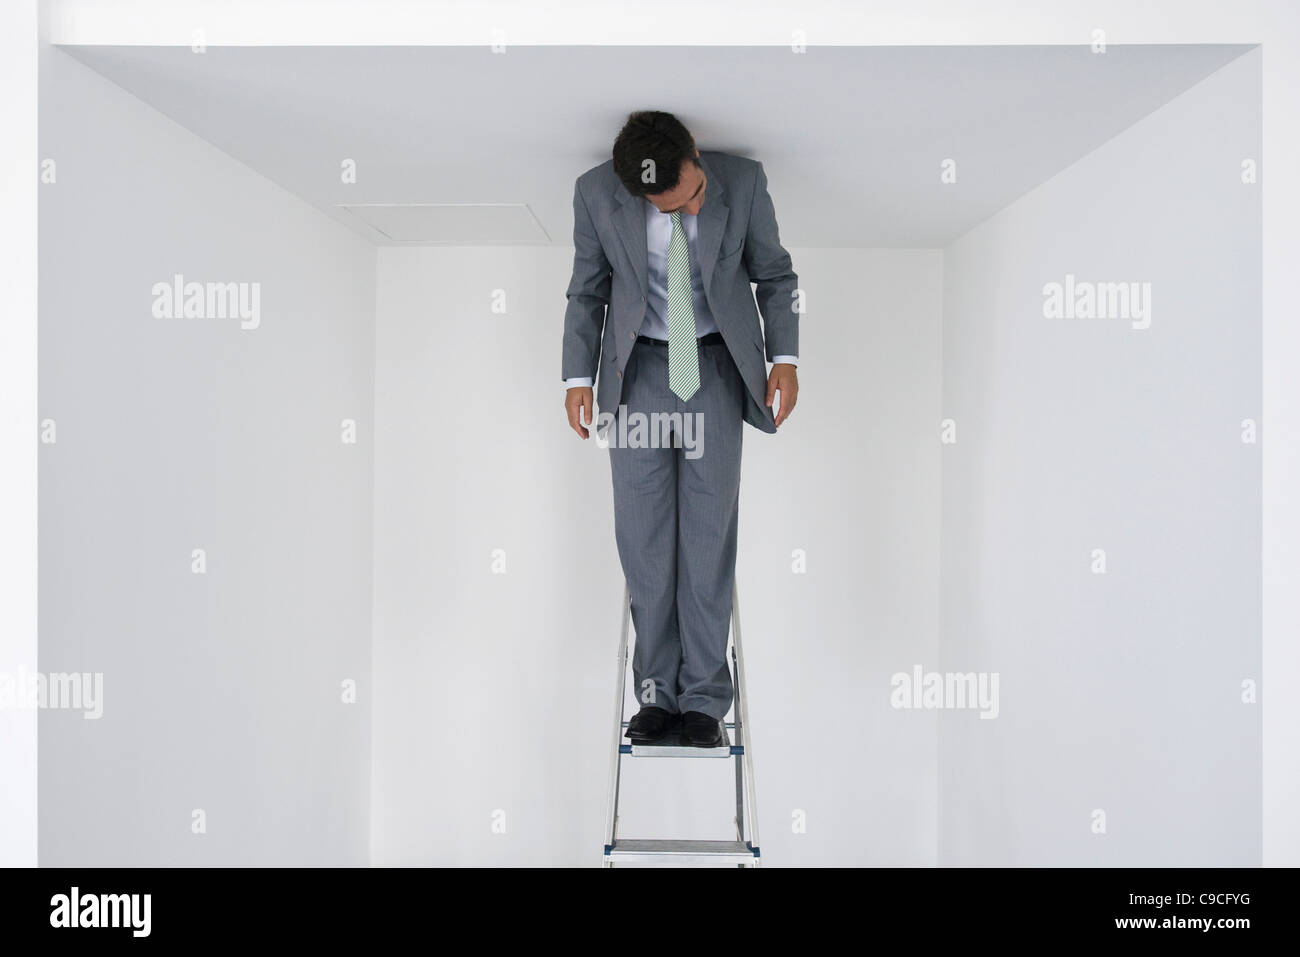 Executive standing on stepladder - Stock Image